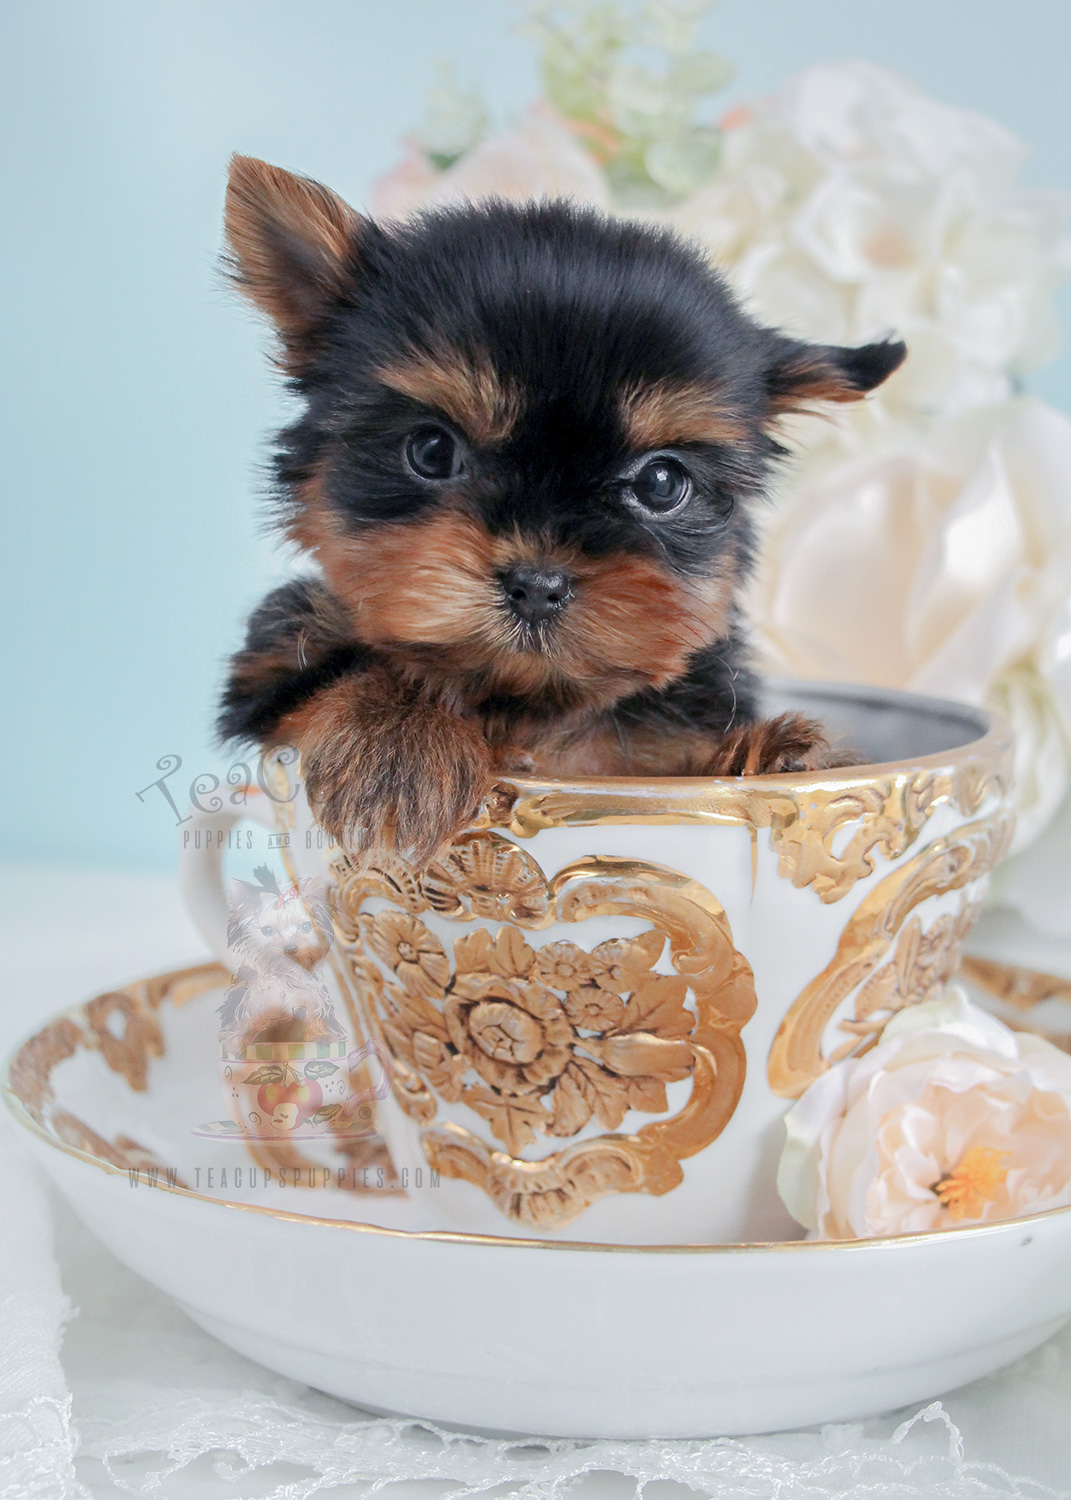 Puppy For Sale #275 Tiny Yorkie